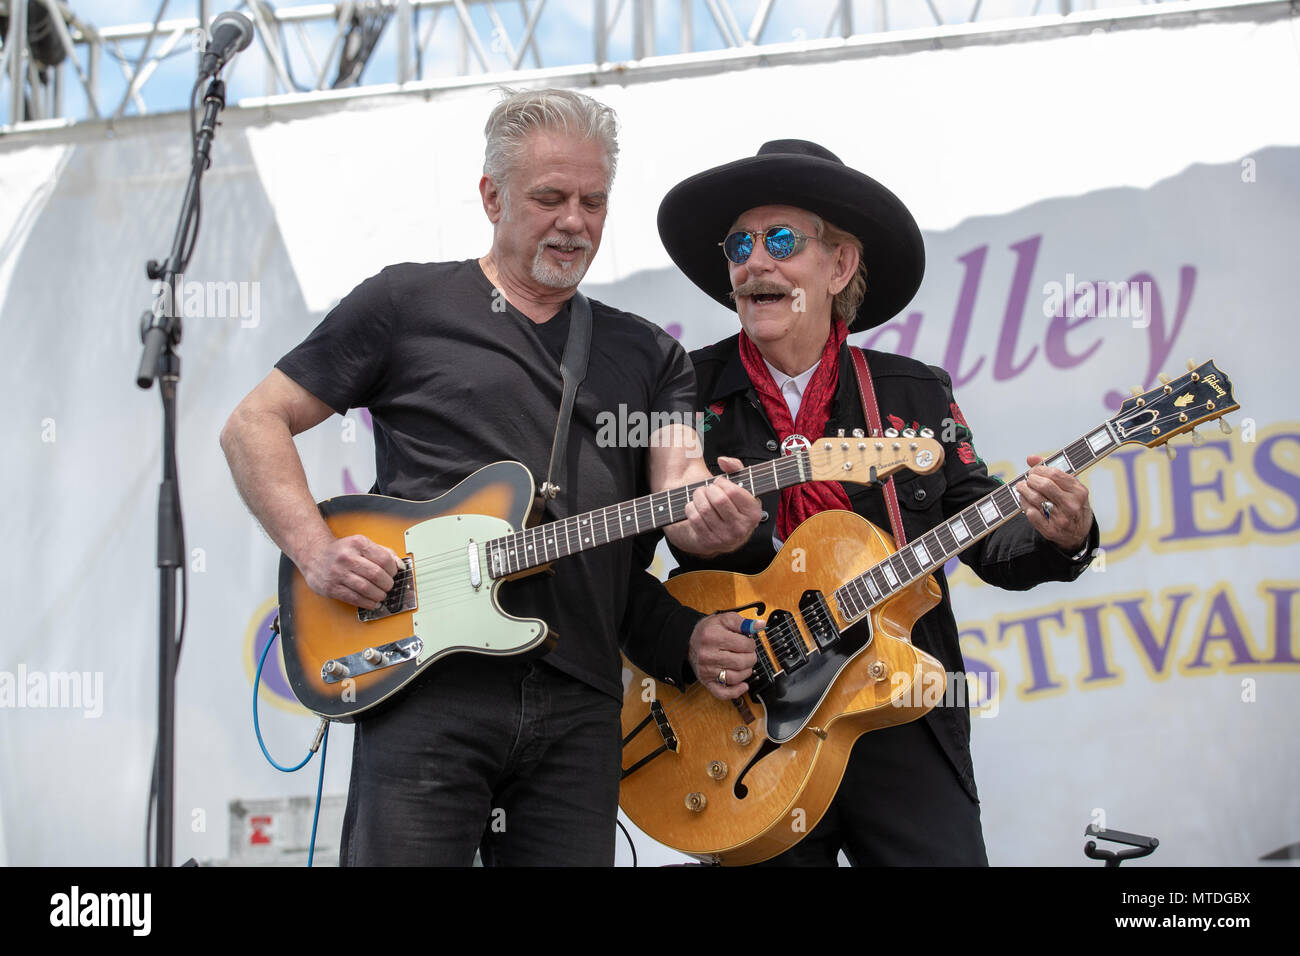 Simi Valley, California, USA. 26th May, 2018. Musician - LIGHTNIN WILLIE [right] PETE ANDERSON [left] performing at The Simi Valley Cajun and Blues Festival 2018, Santa Susana Community Center, Simi Valley, California, USA, May 26, 2018. This is the 29th year for the festival which supports the local Rotary Club.Credit Image cr Greg Papazian/ZUMA Press Credit: Scott Mitchell/ZUMA Wire/Alamy Live News - Stock Image